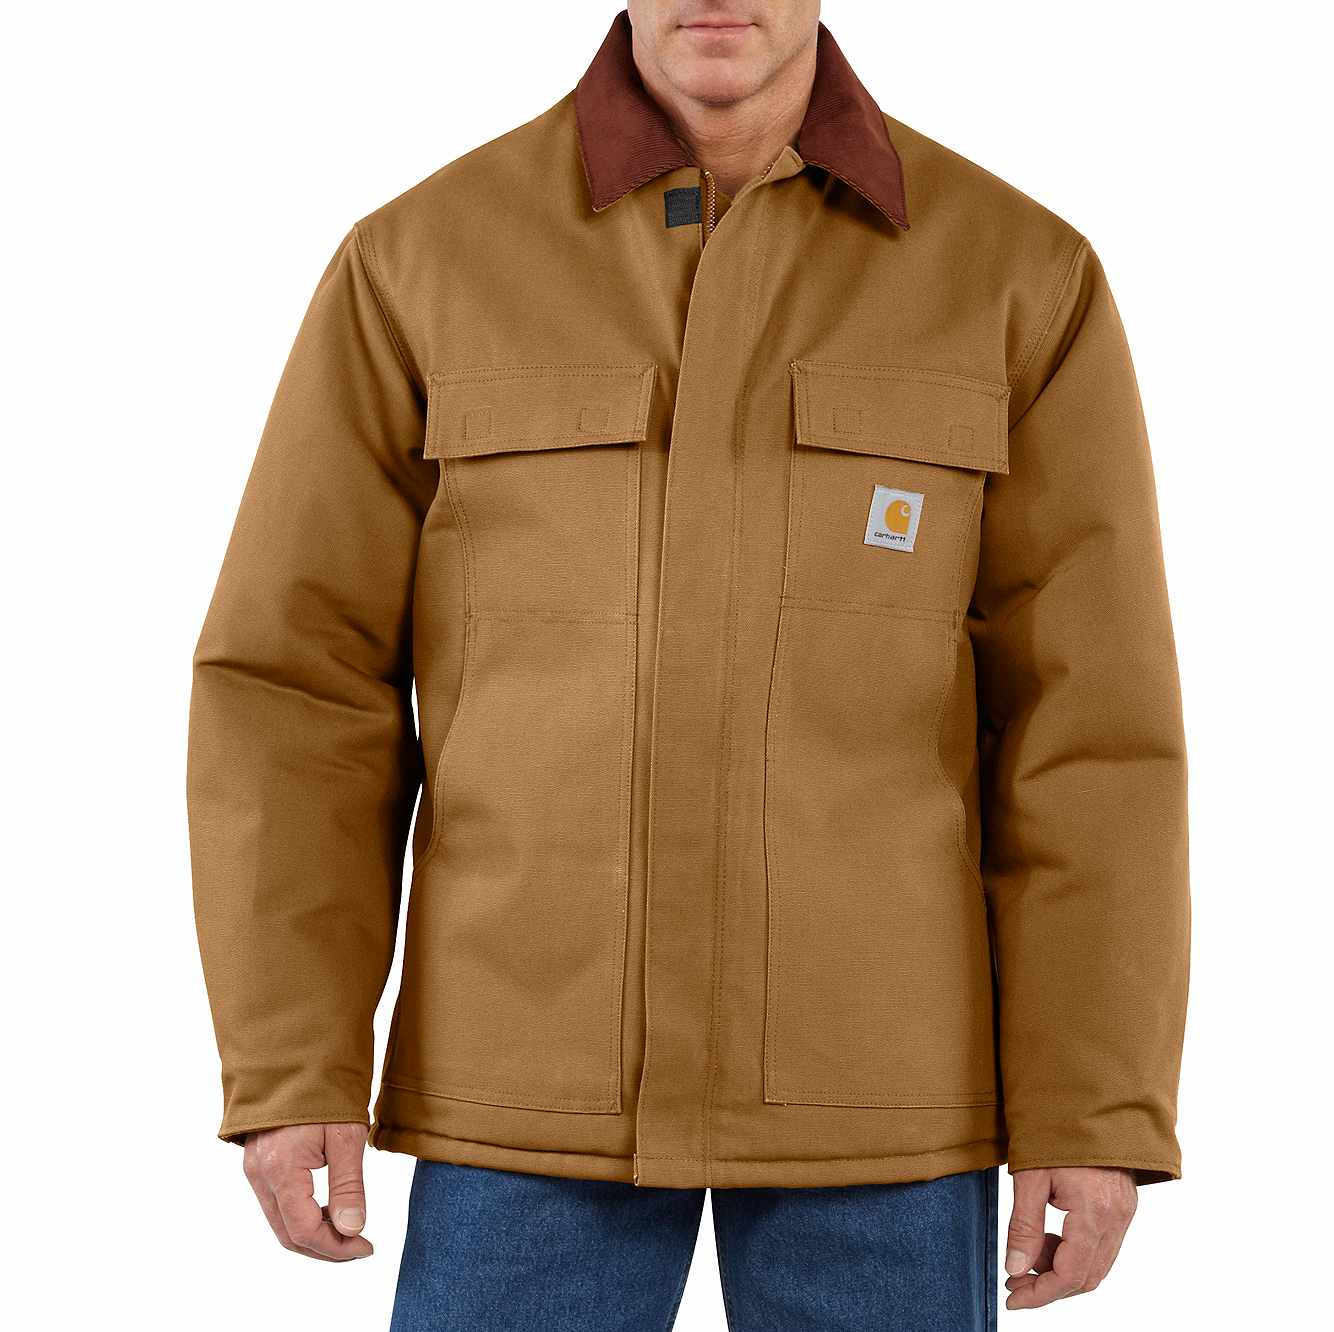 Picture of Duck Traditional Arctic Quilt-Lined Coat in Carhartt Brown